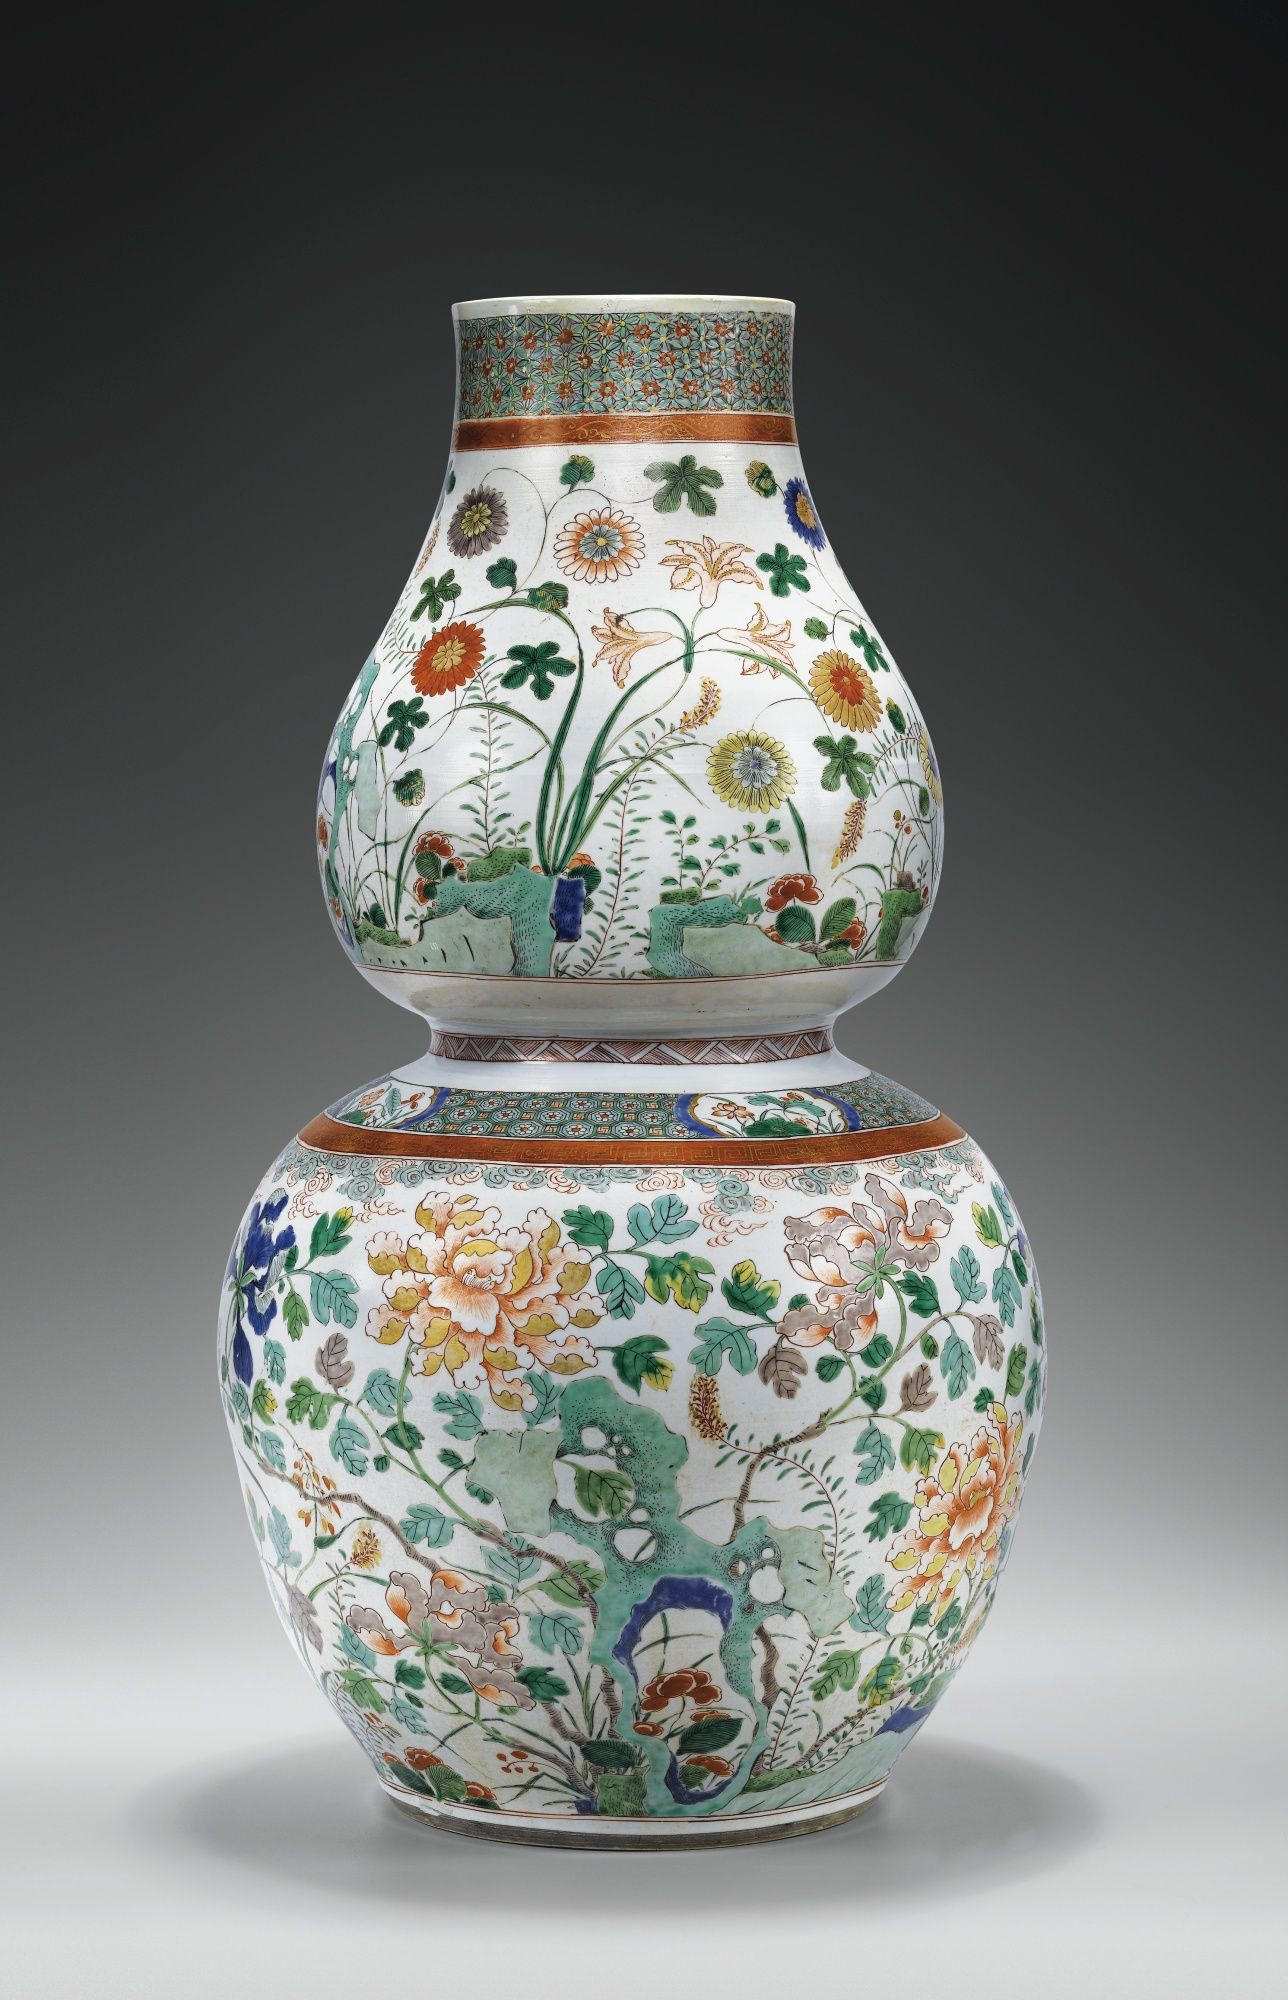 large white pottery vase of an unusual large double gourd shaped famille verte vase qing for an unusual large double gourd shaped famille verte vase qing dynasty kangxi period 1662 1722